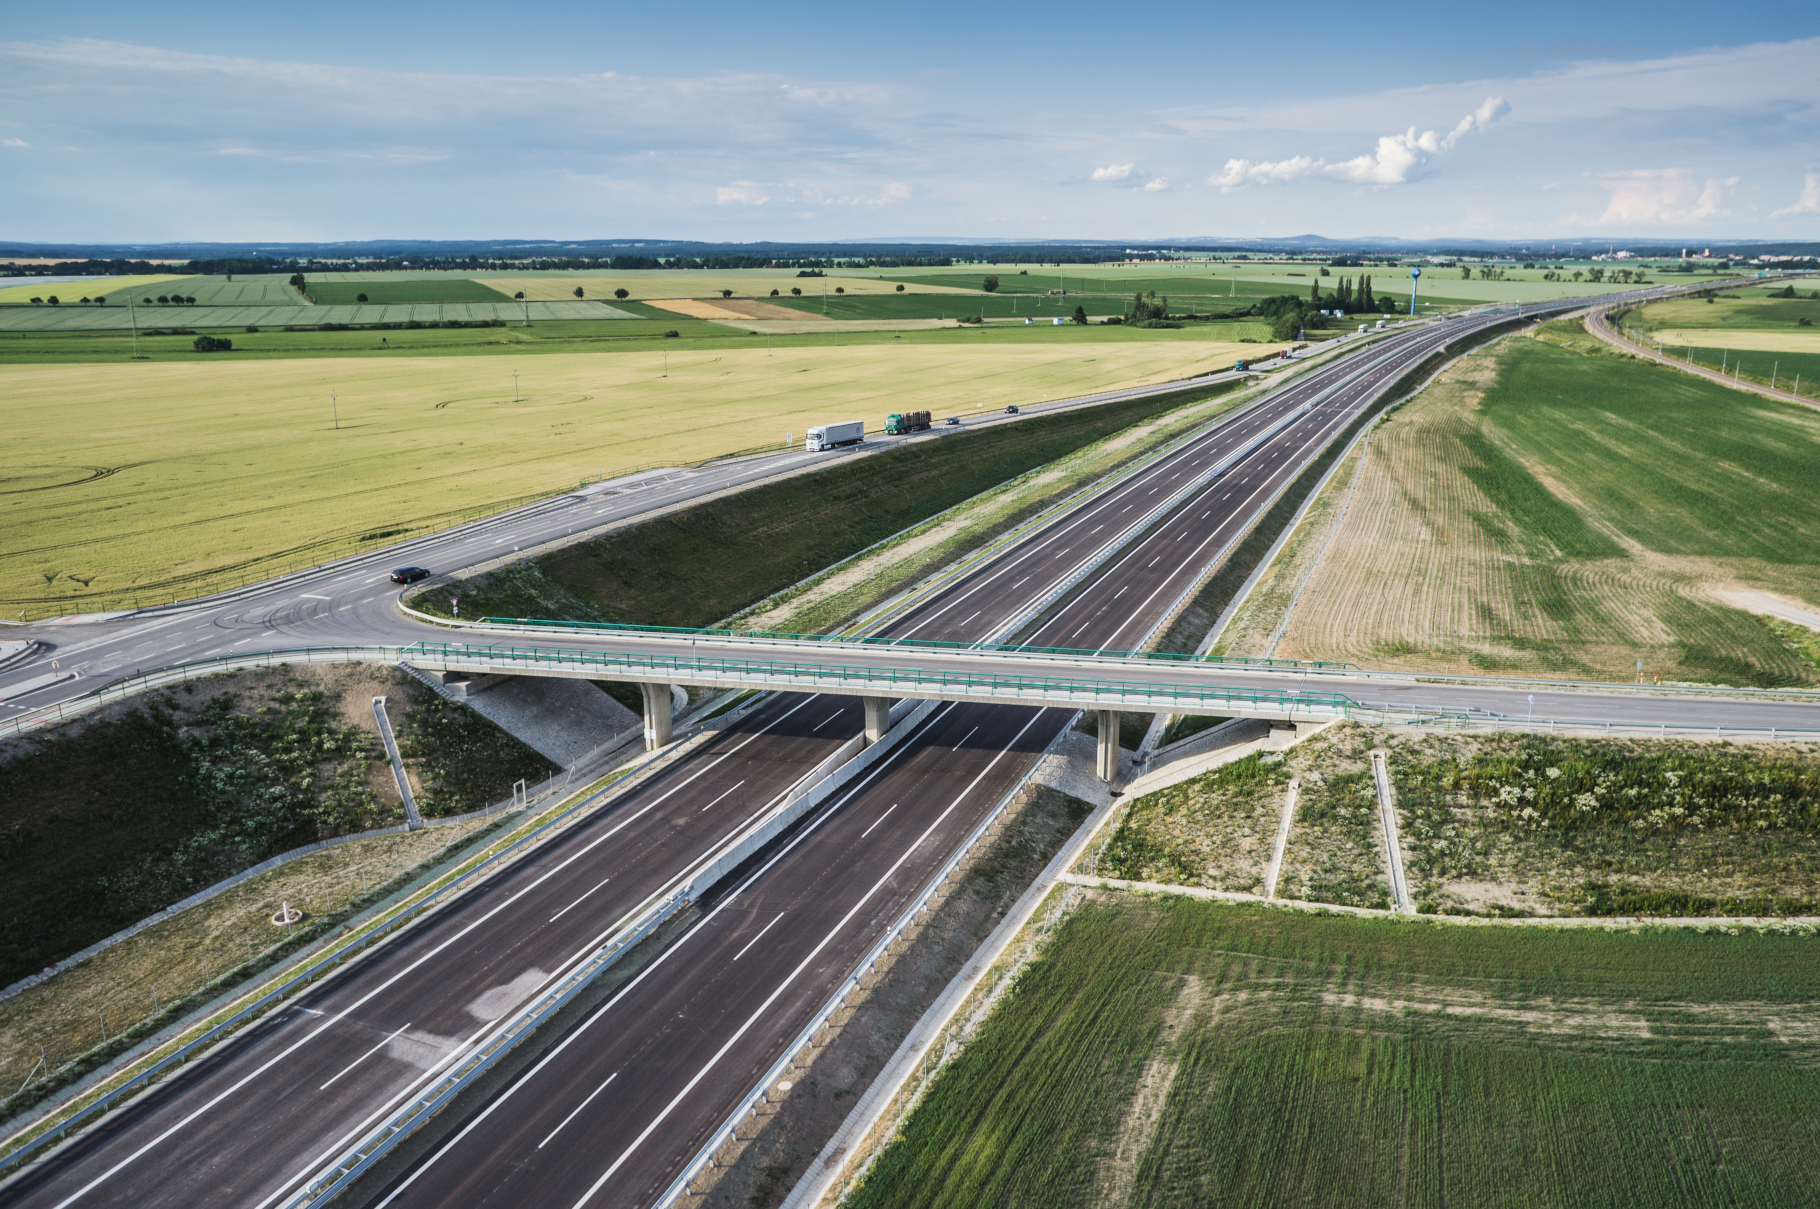 D3, Bošilec - Ševětín - Construction de routes et de ponts